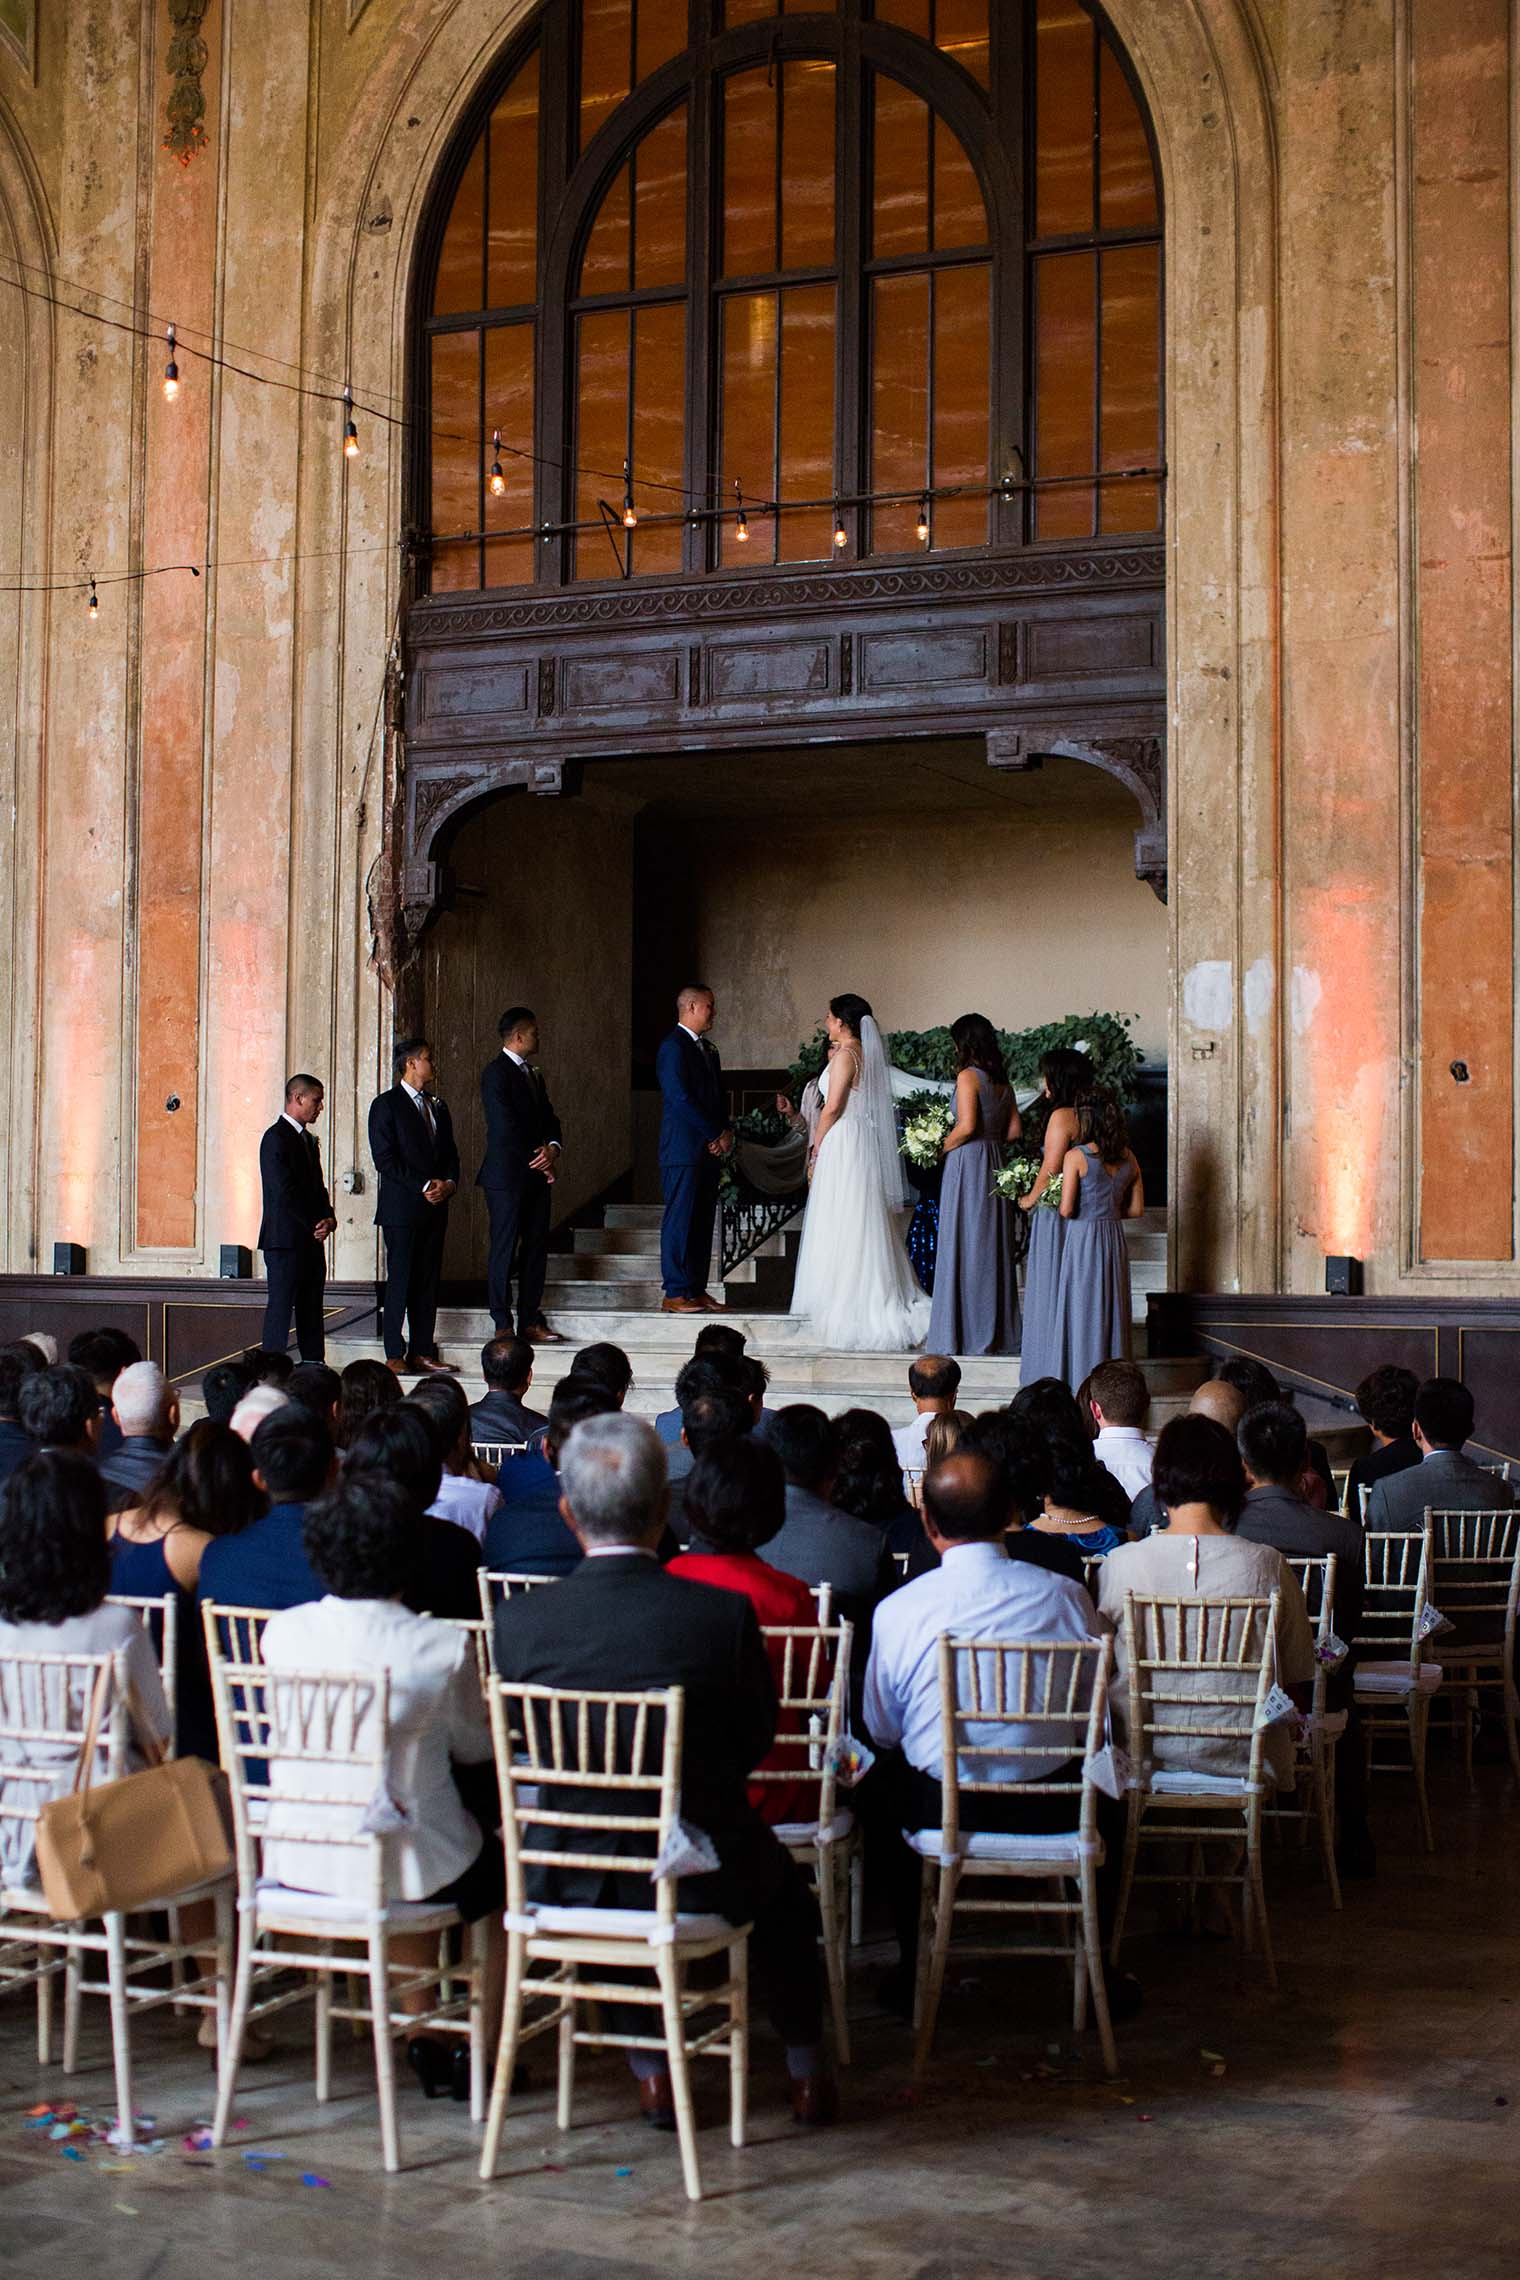 16th Street Station Wedding Ceremony